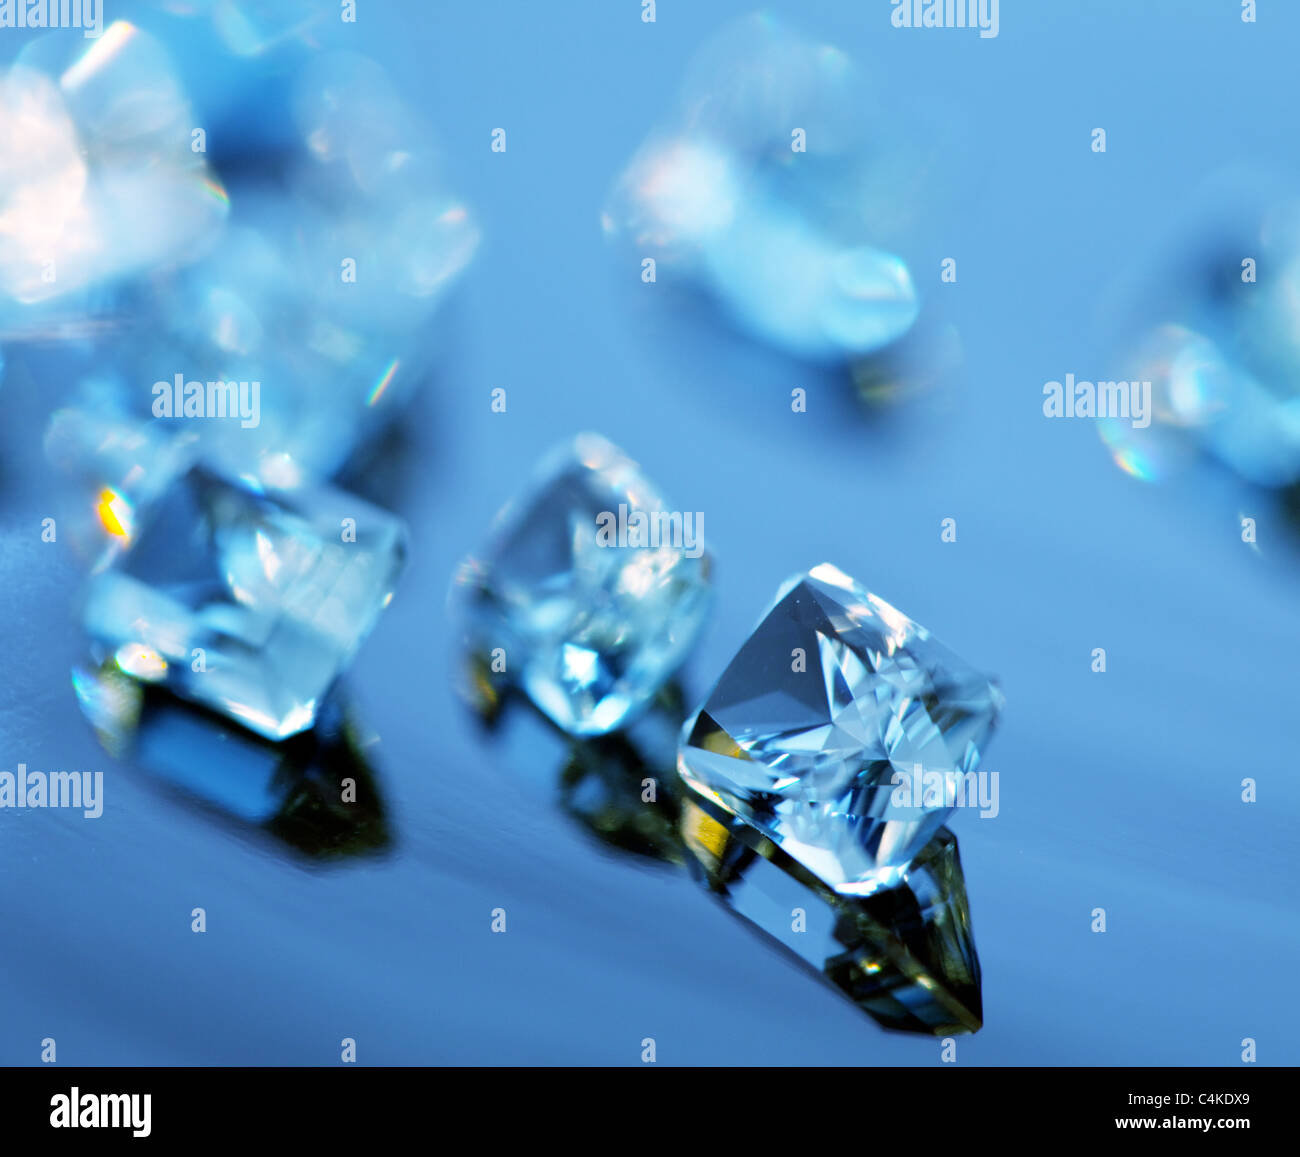 jewels - Stock Image